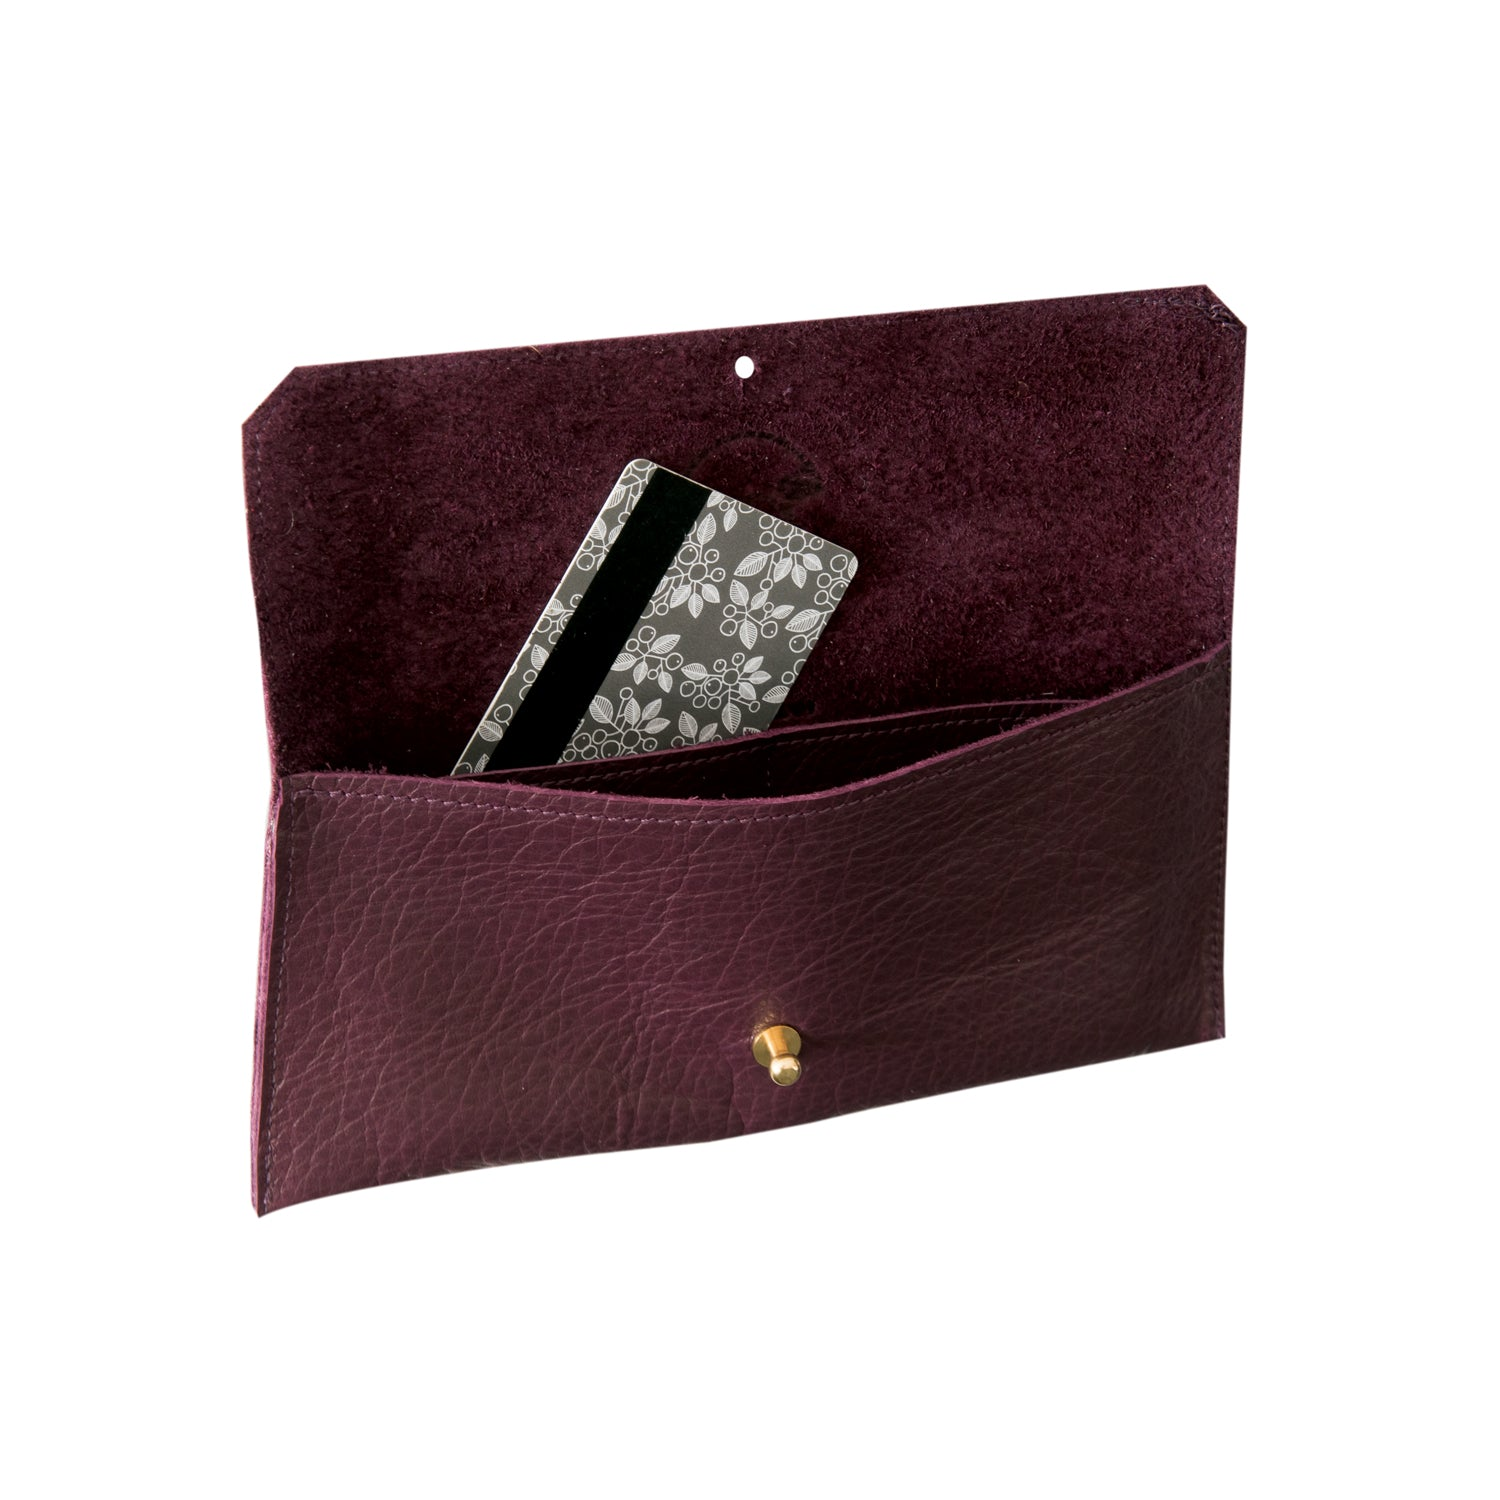 Dahlia card purse -  Wine nassau leather